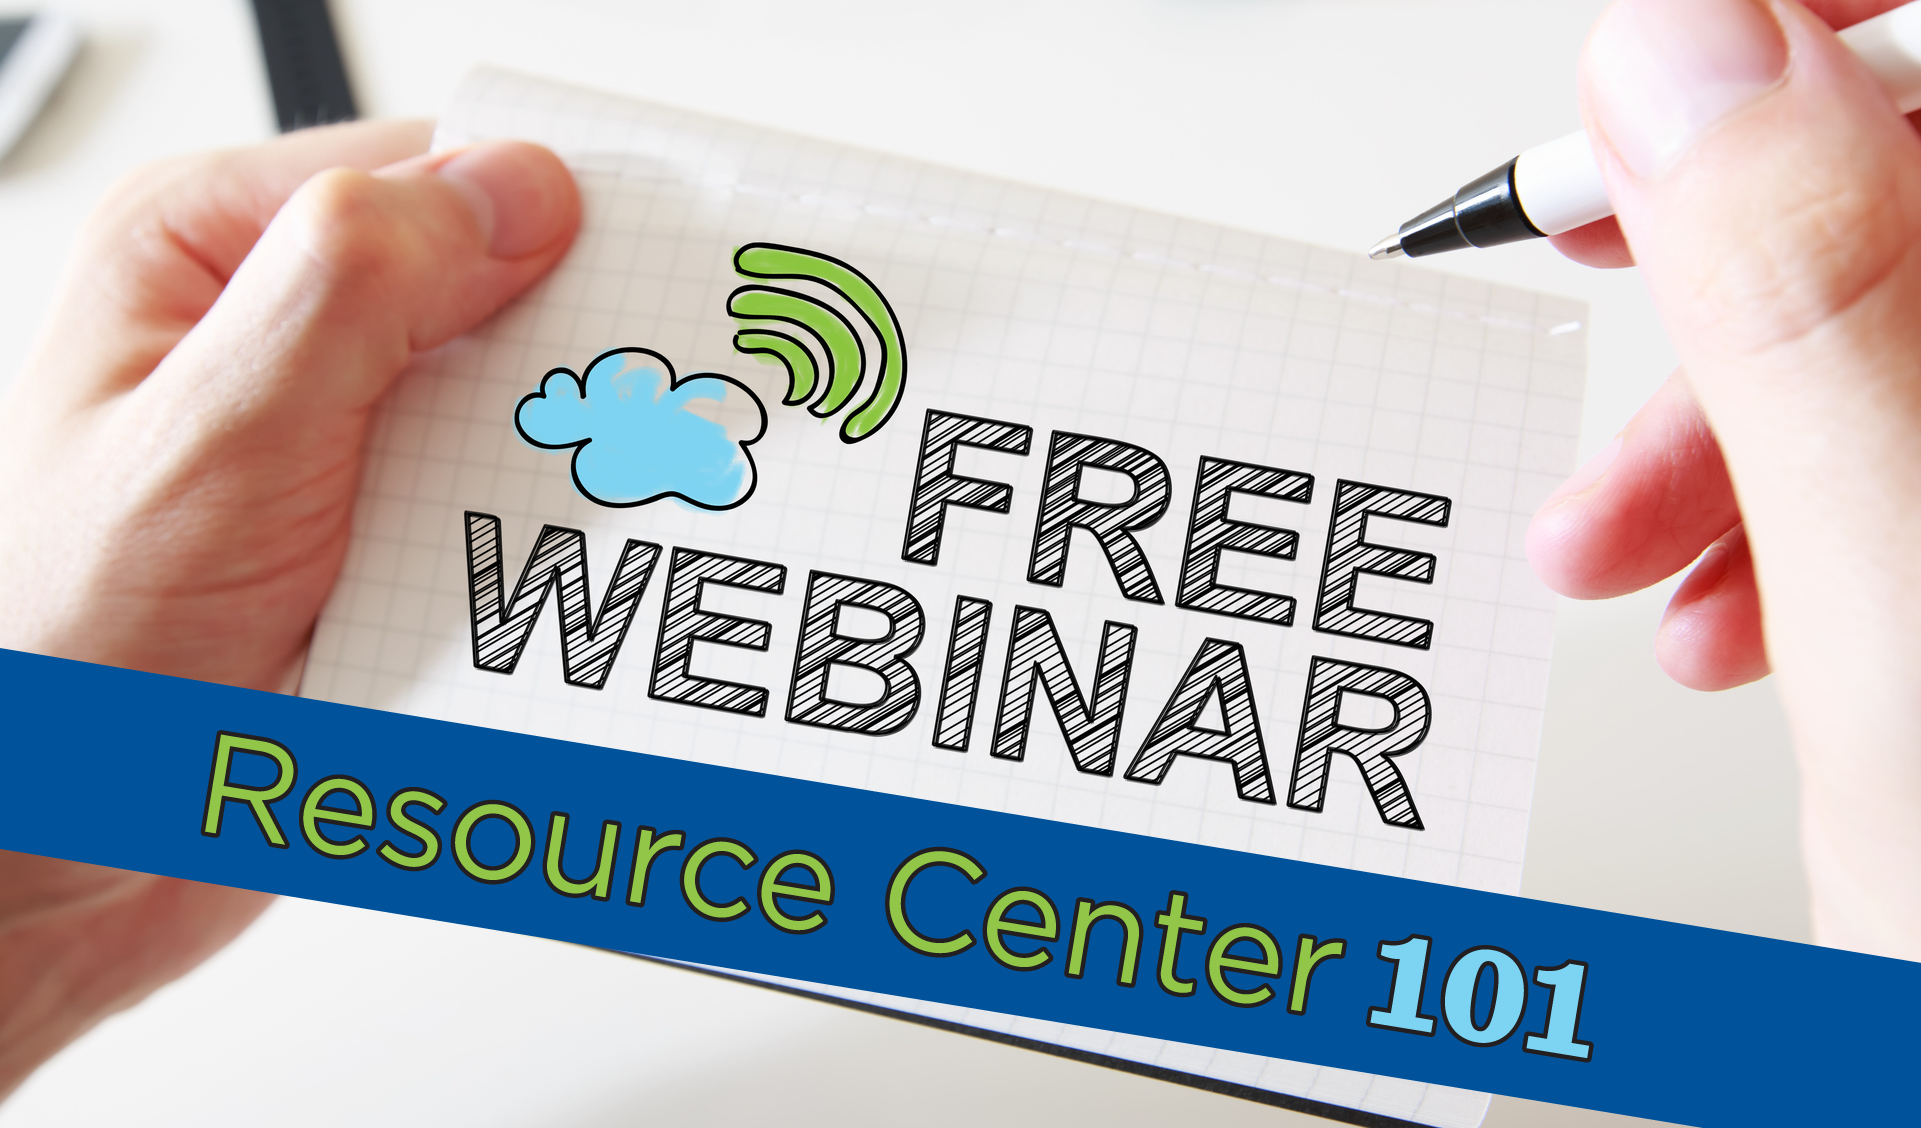 Resource Center 101